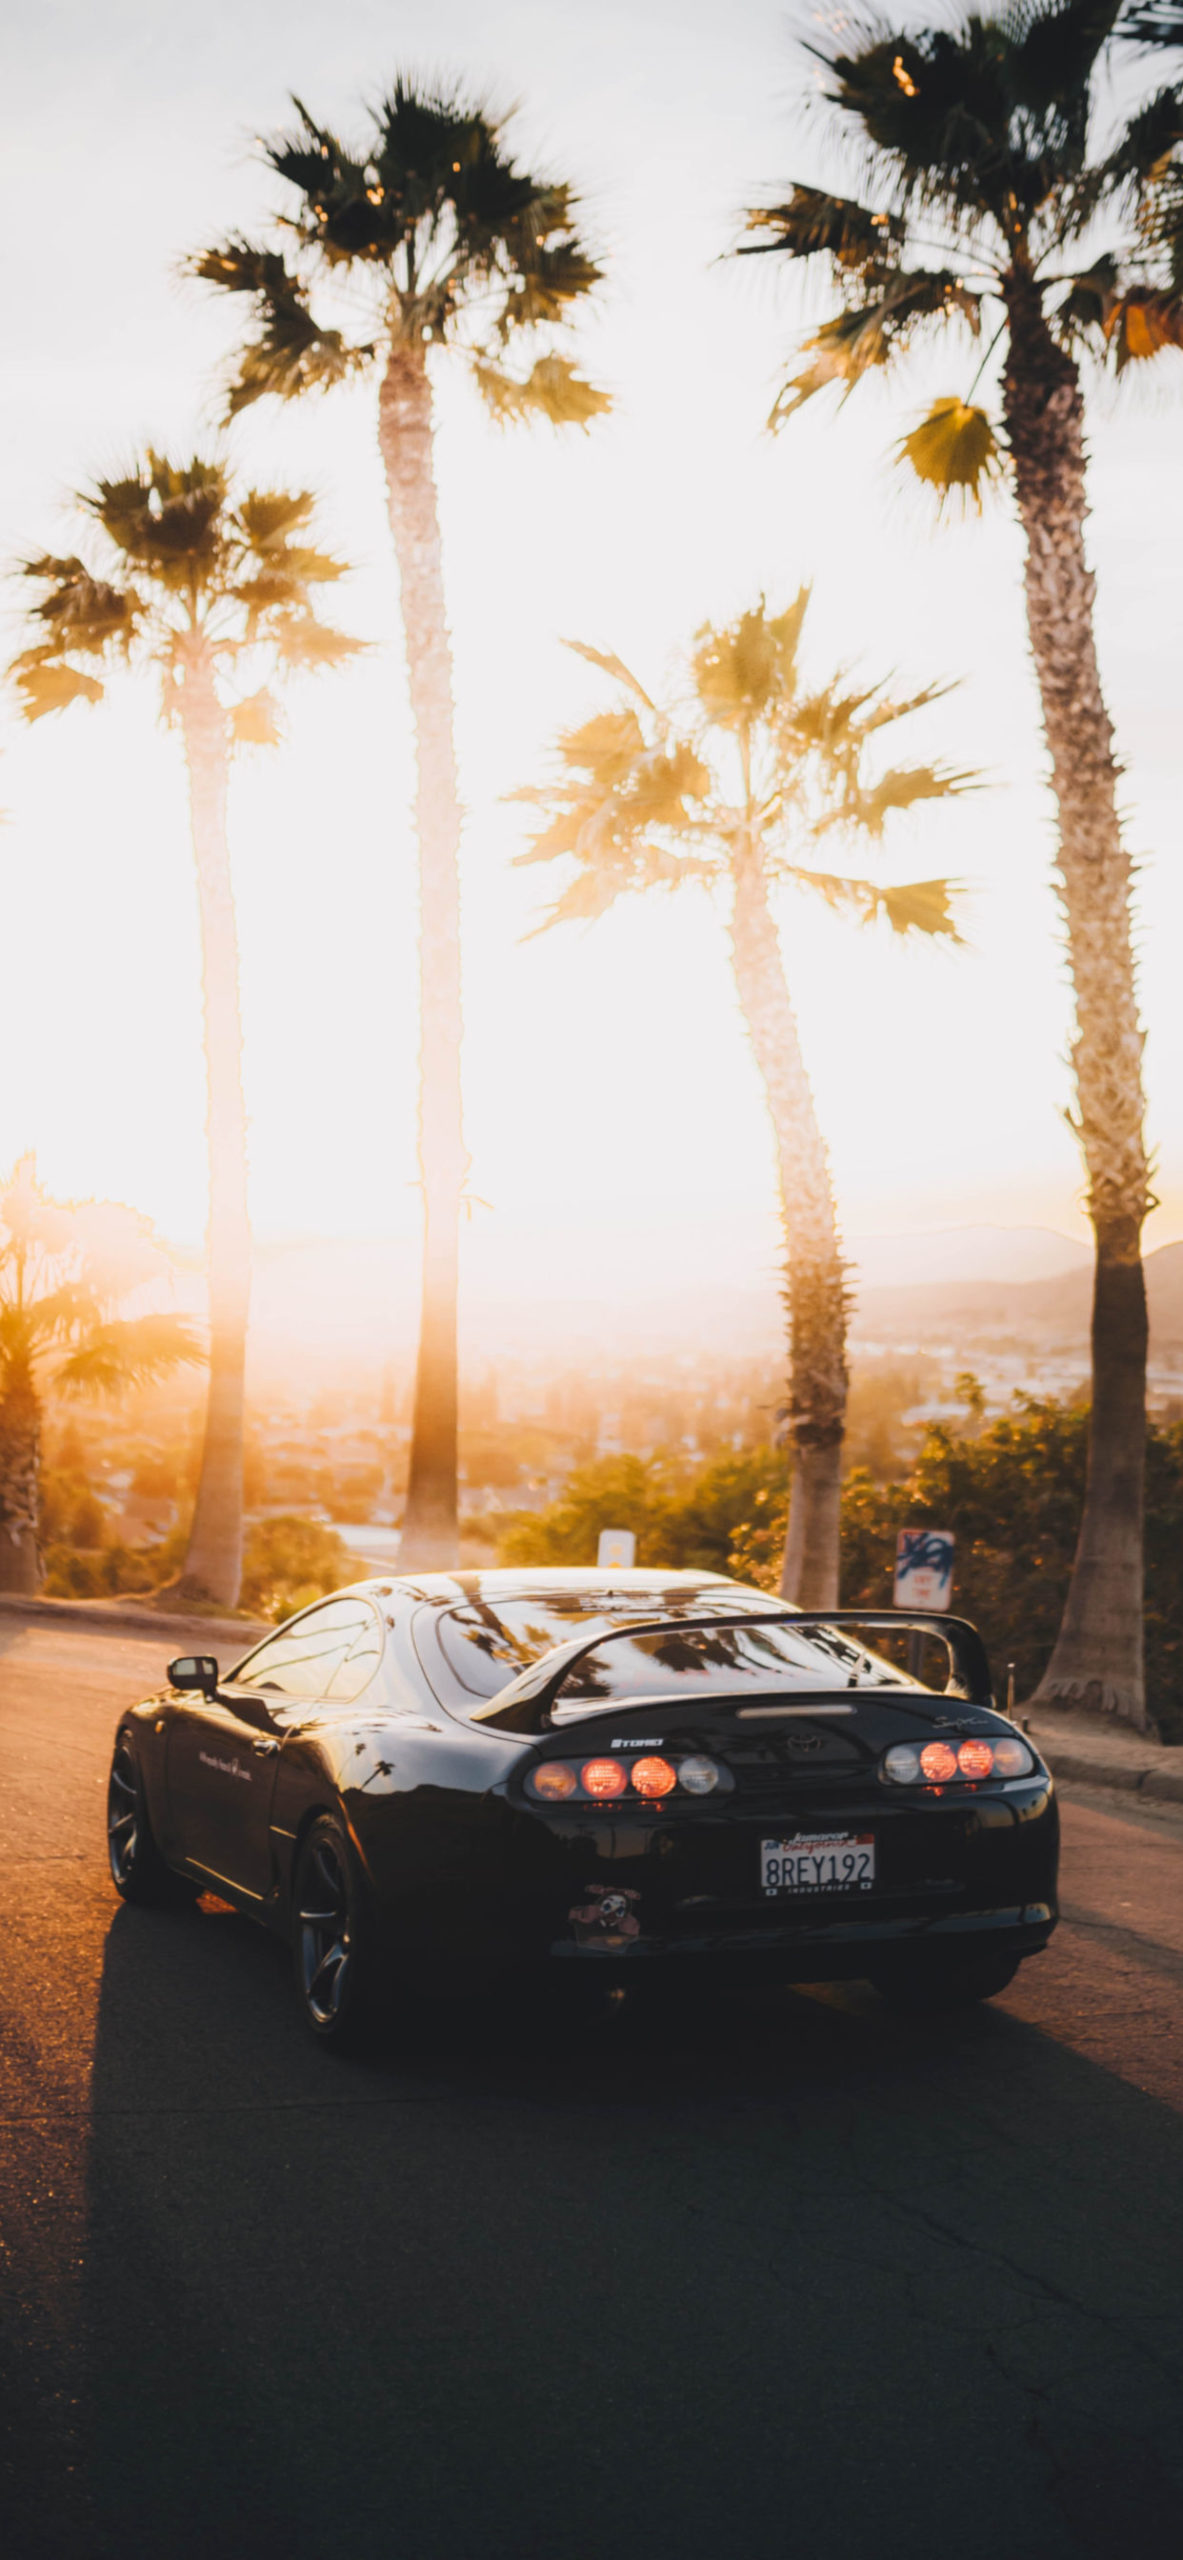 iPhone wallpapers car palms sunset scaled Car